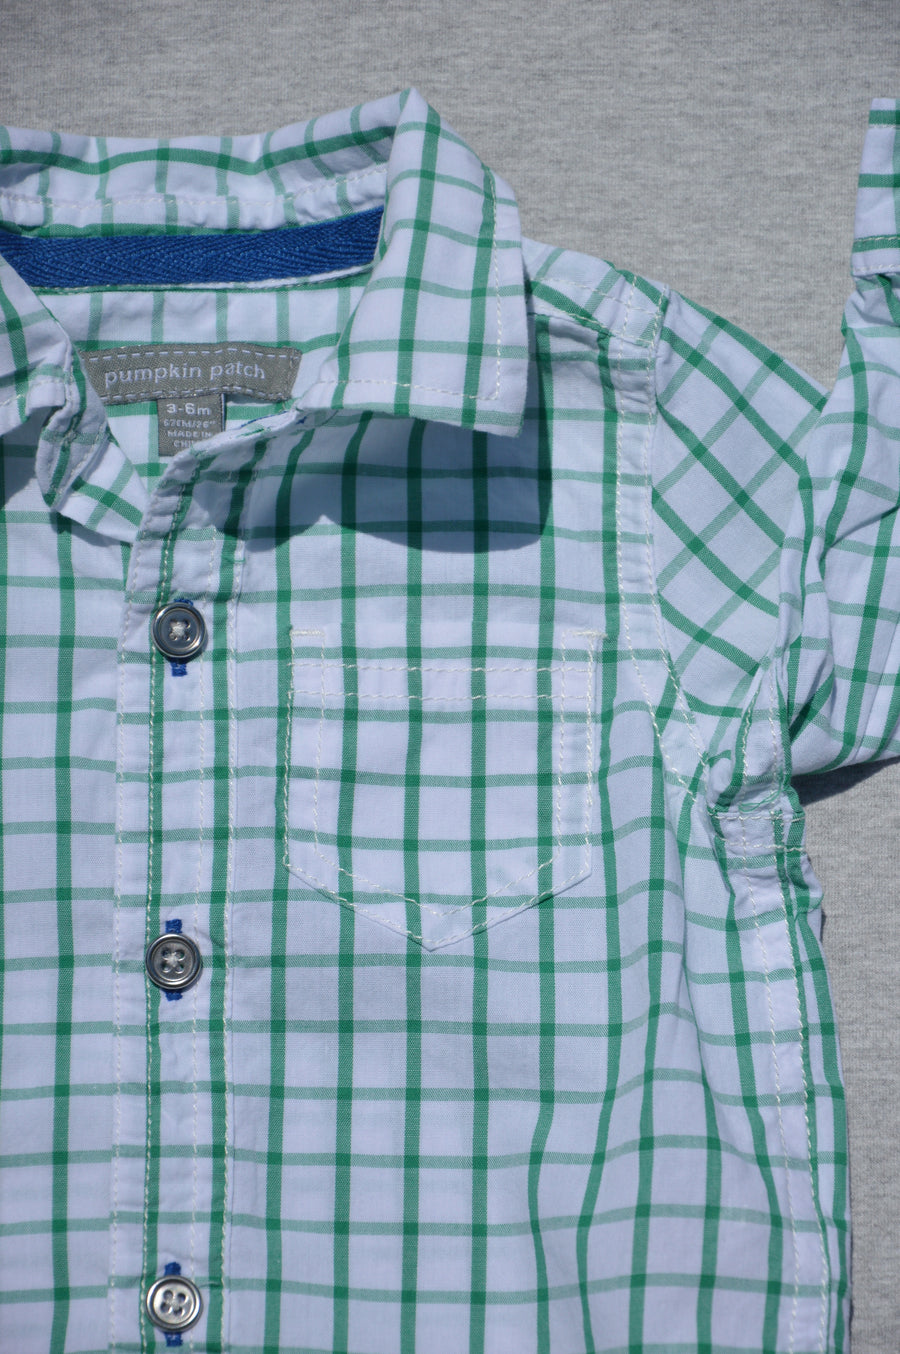 Pumpkin Patch - nearly new - green & white checked long-sleeved shirt, size 3-6m